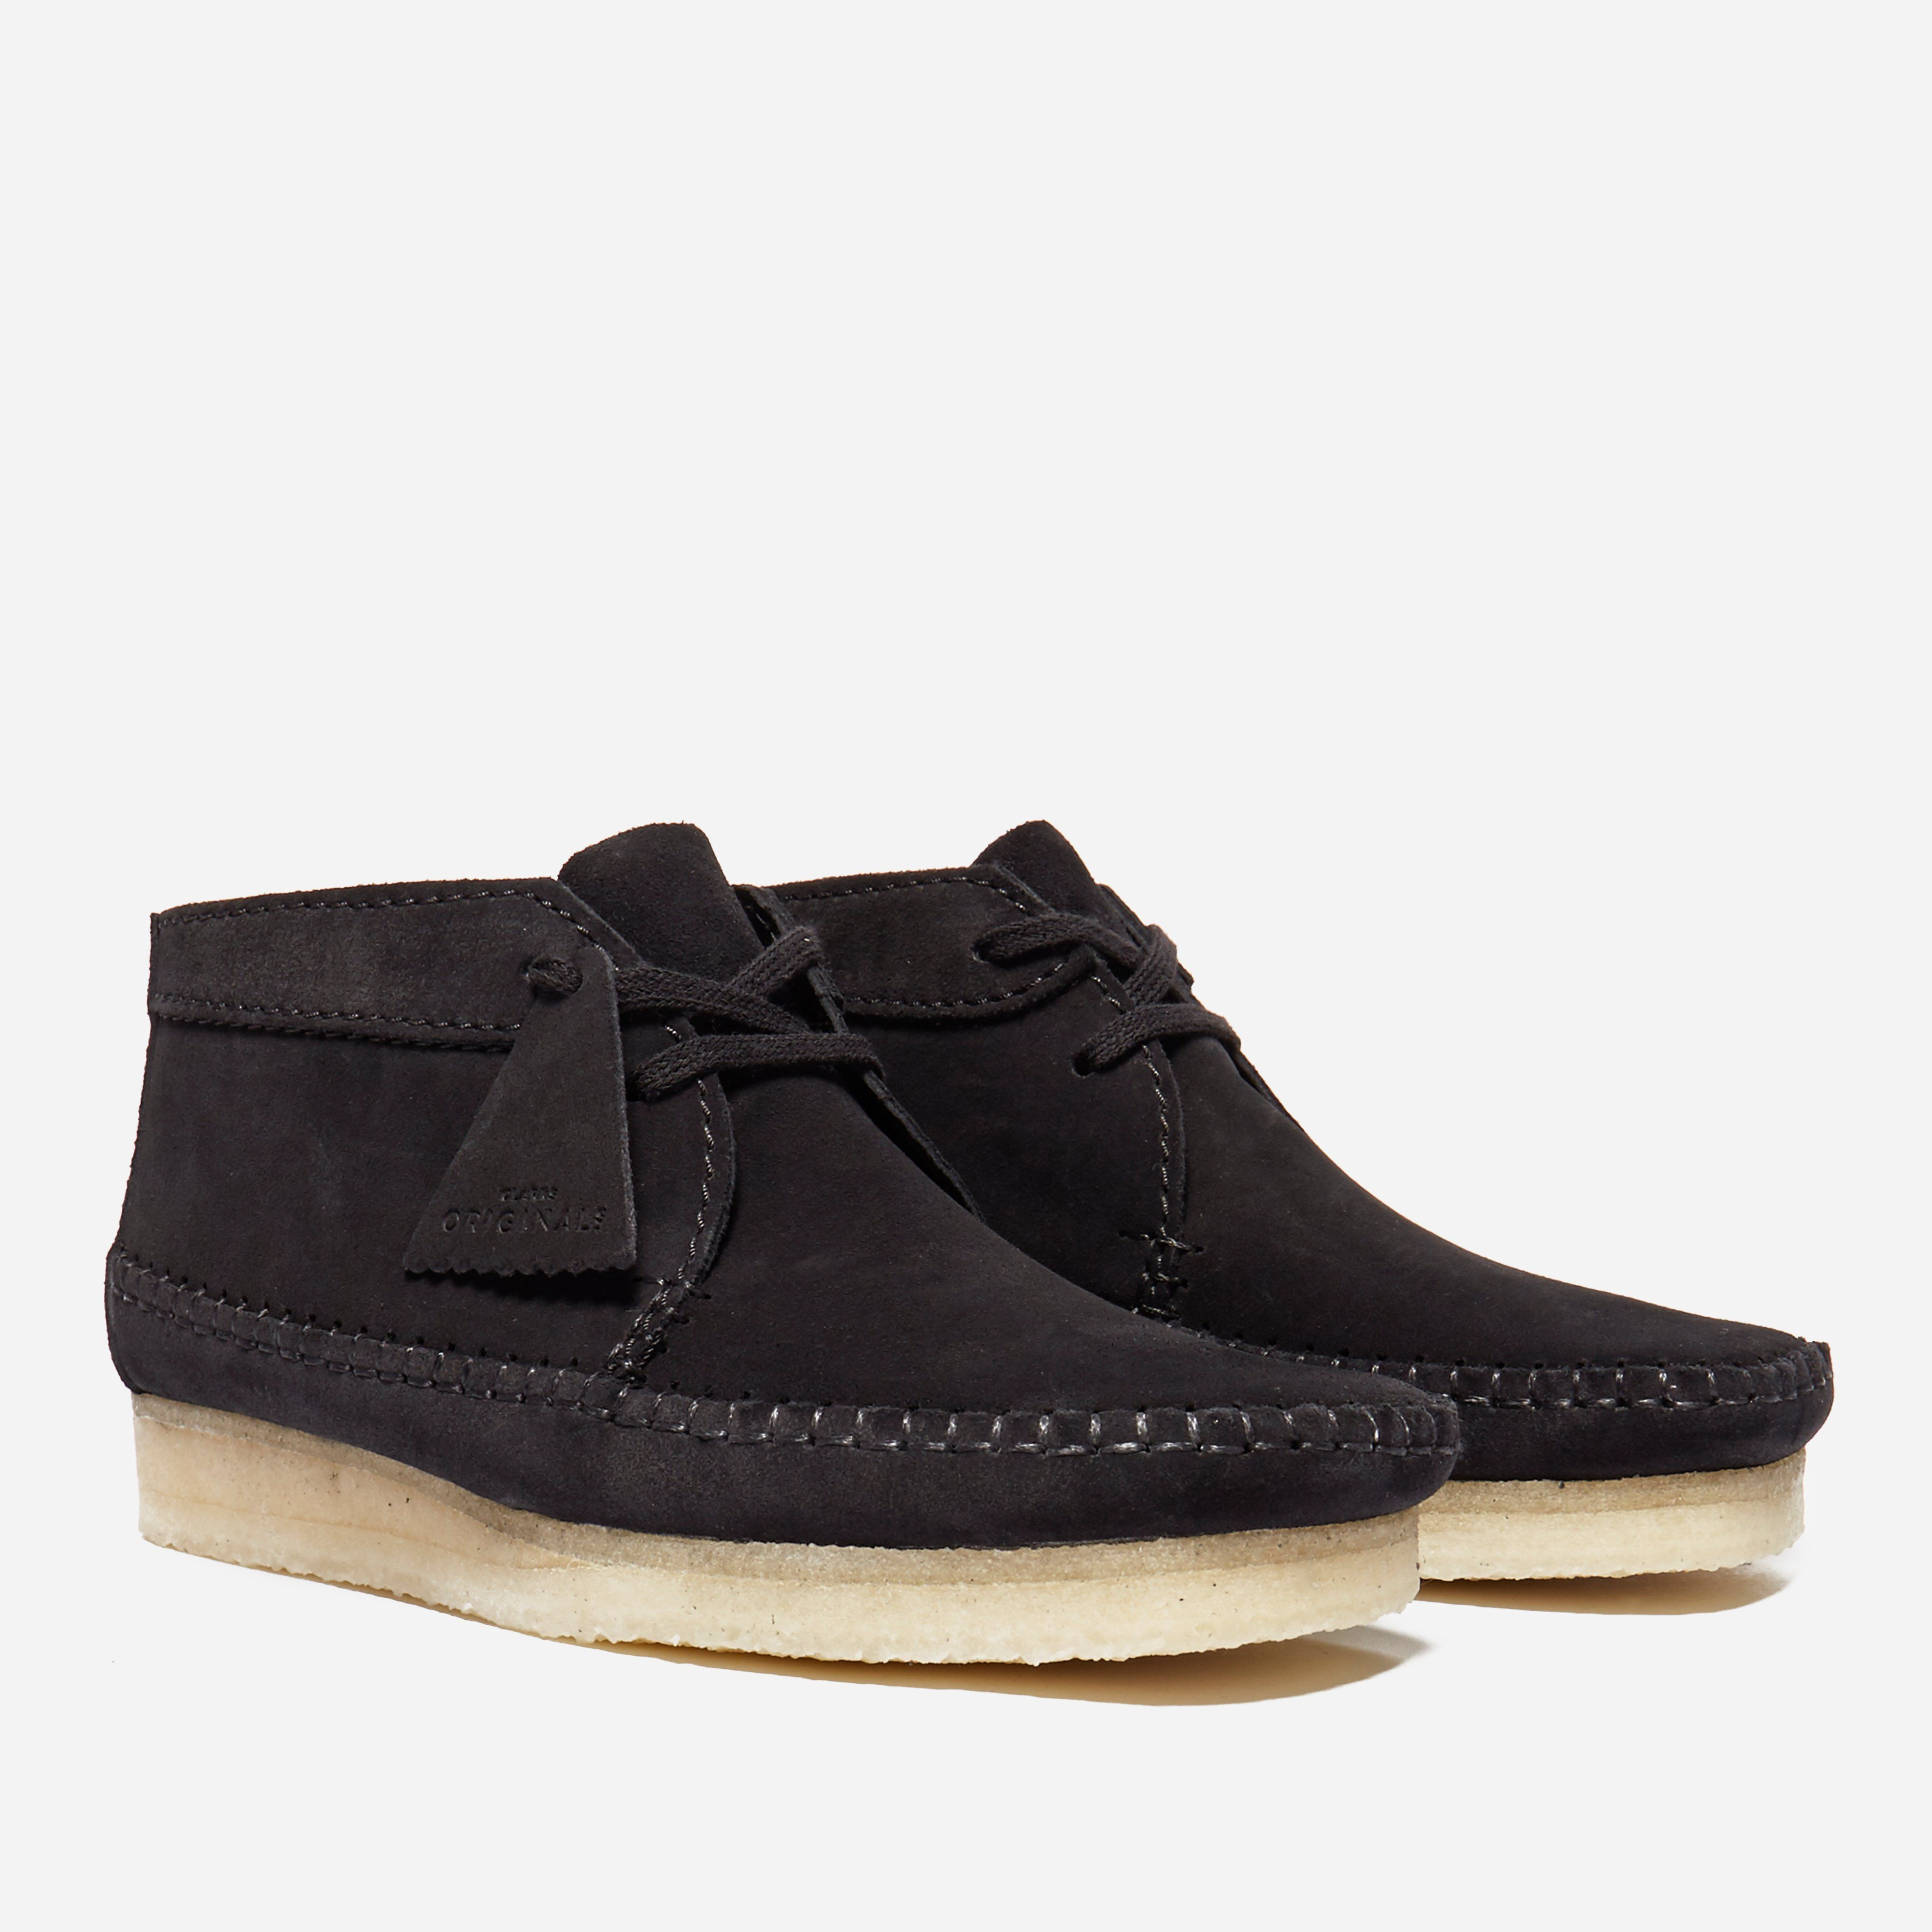 Clarks Originals Weaver Boot